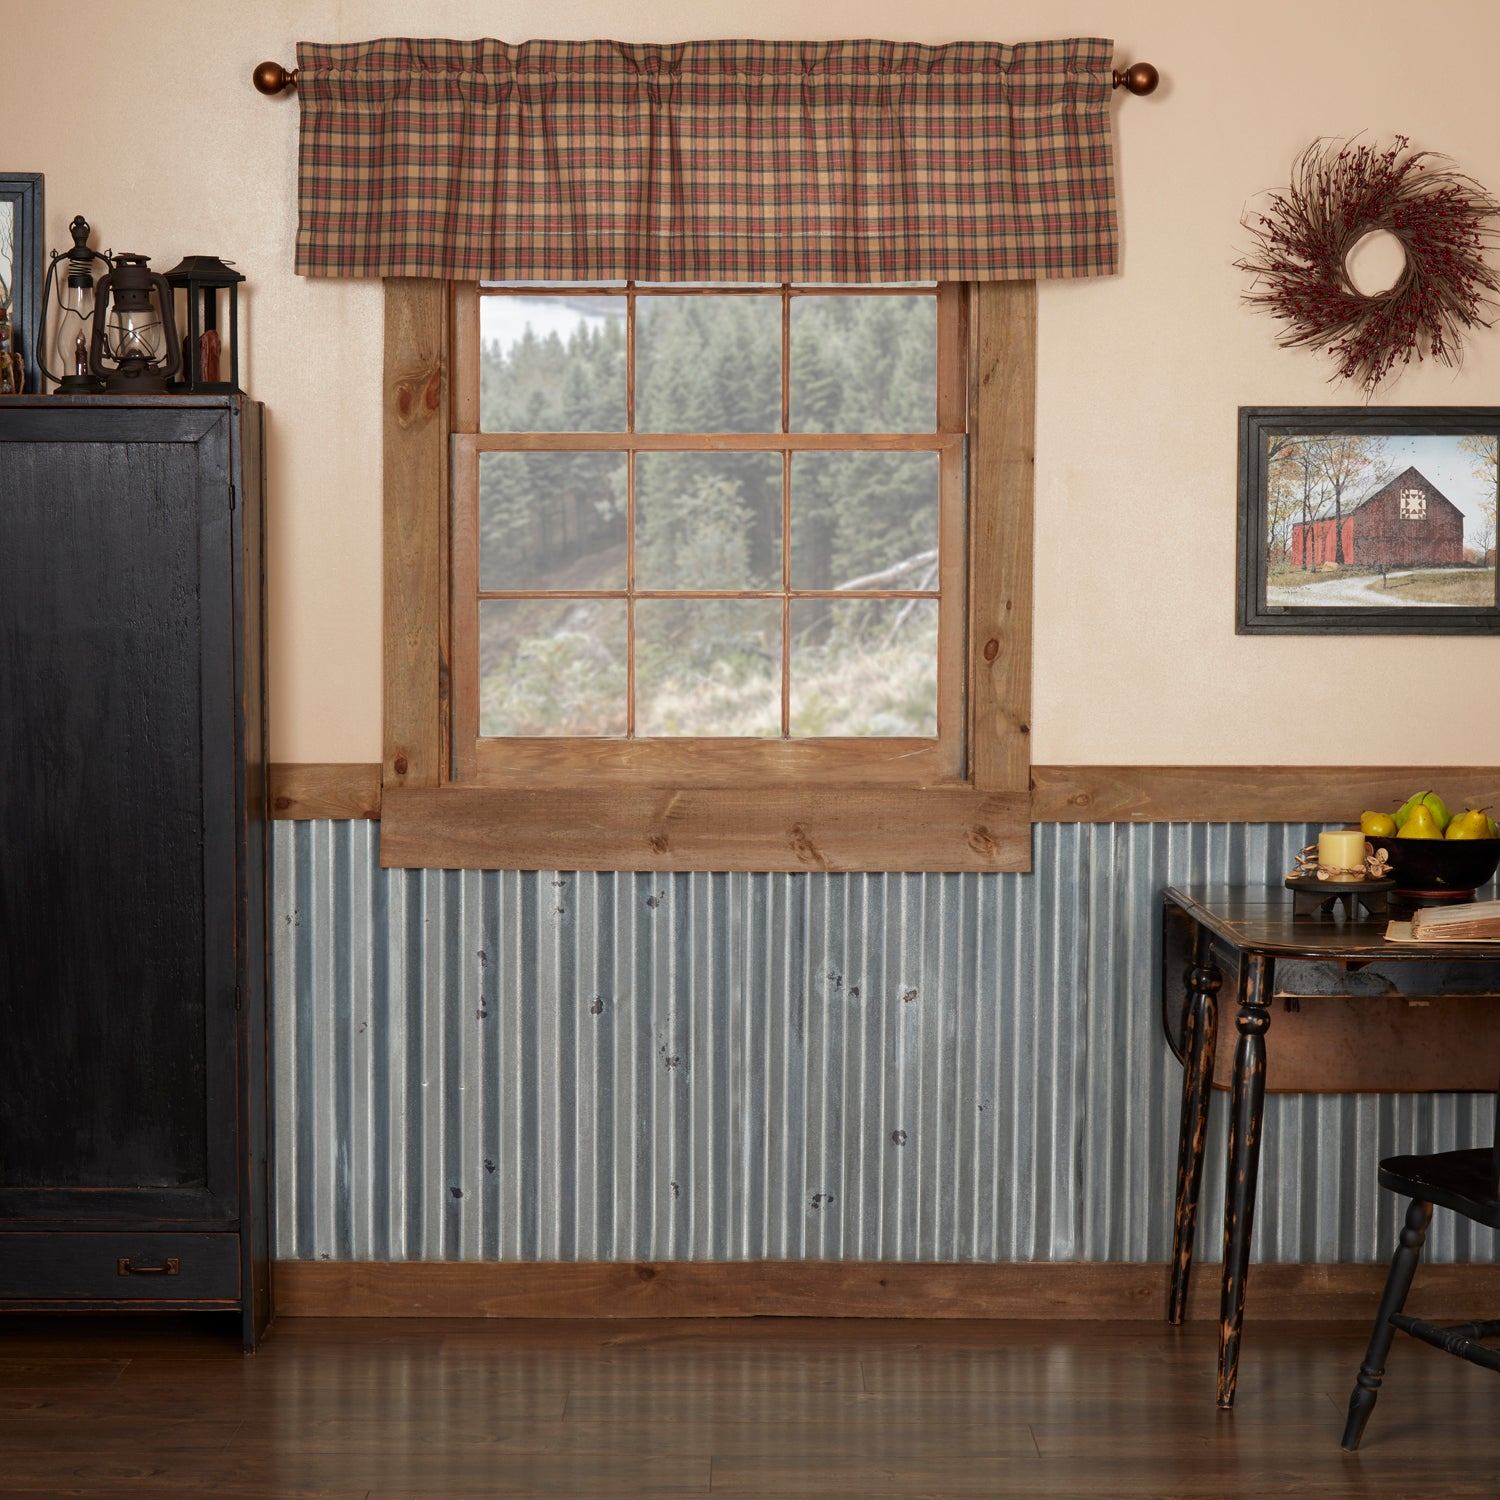 Crosswoods Valance 16x60 - Woodrol